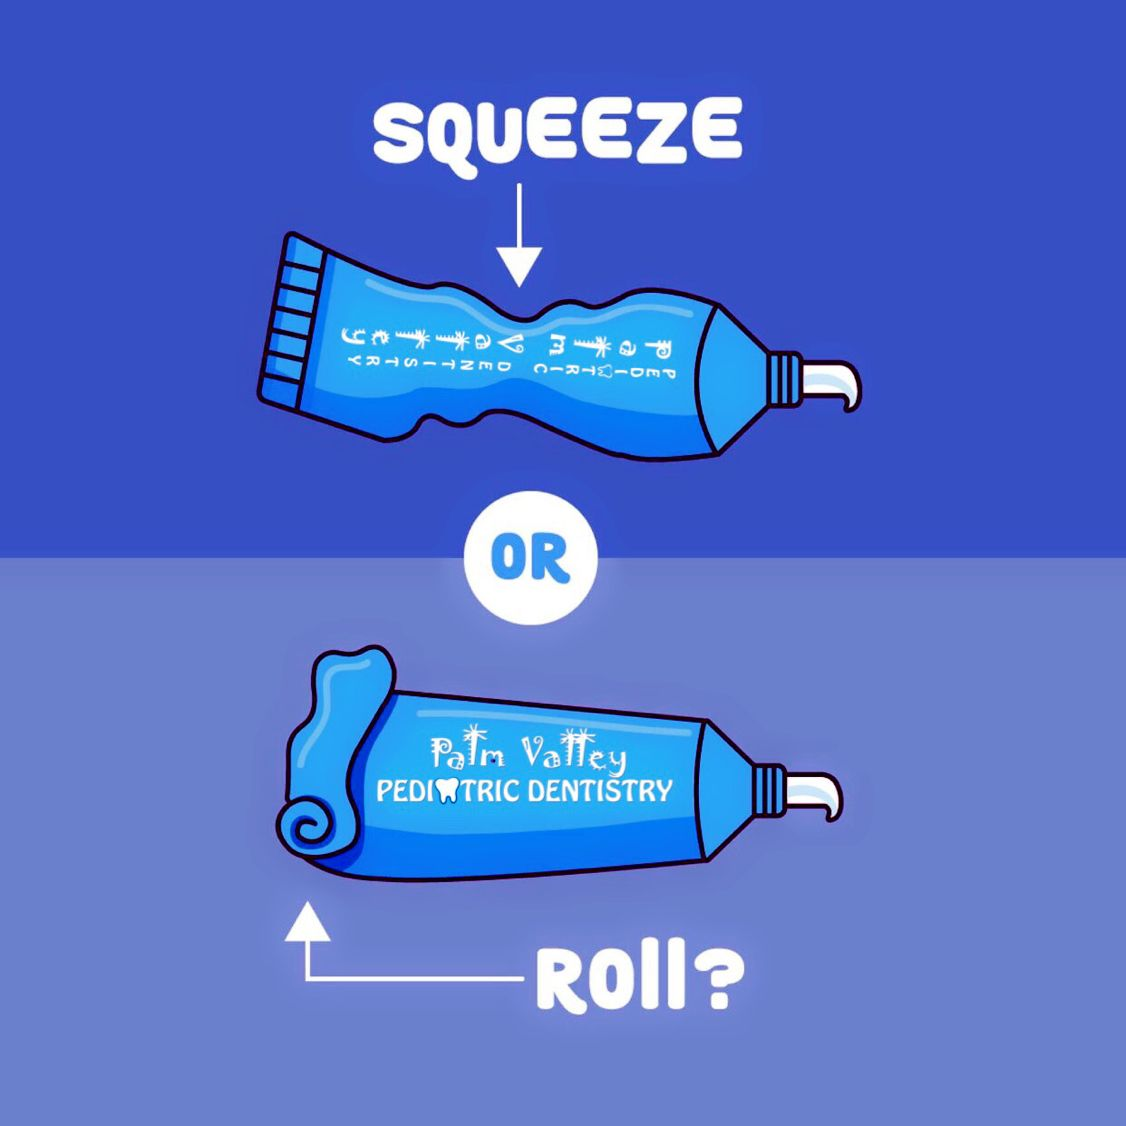 Do you squeeze or roll your toothpaste tube let us know